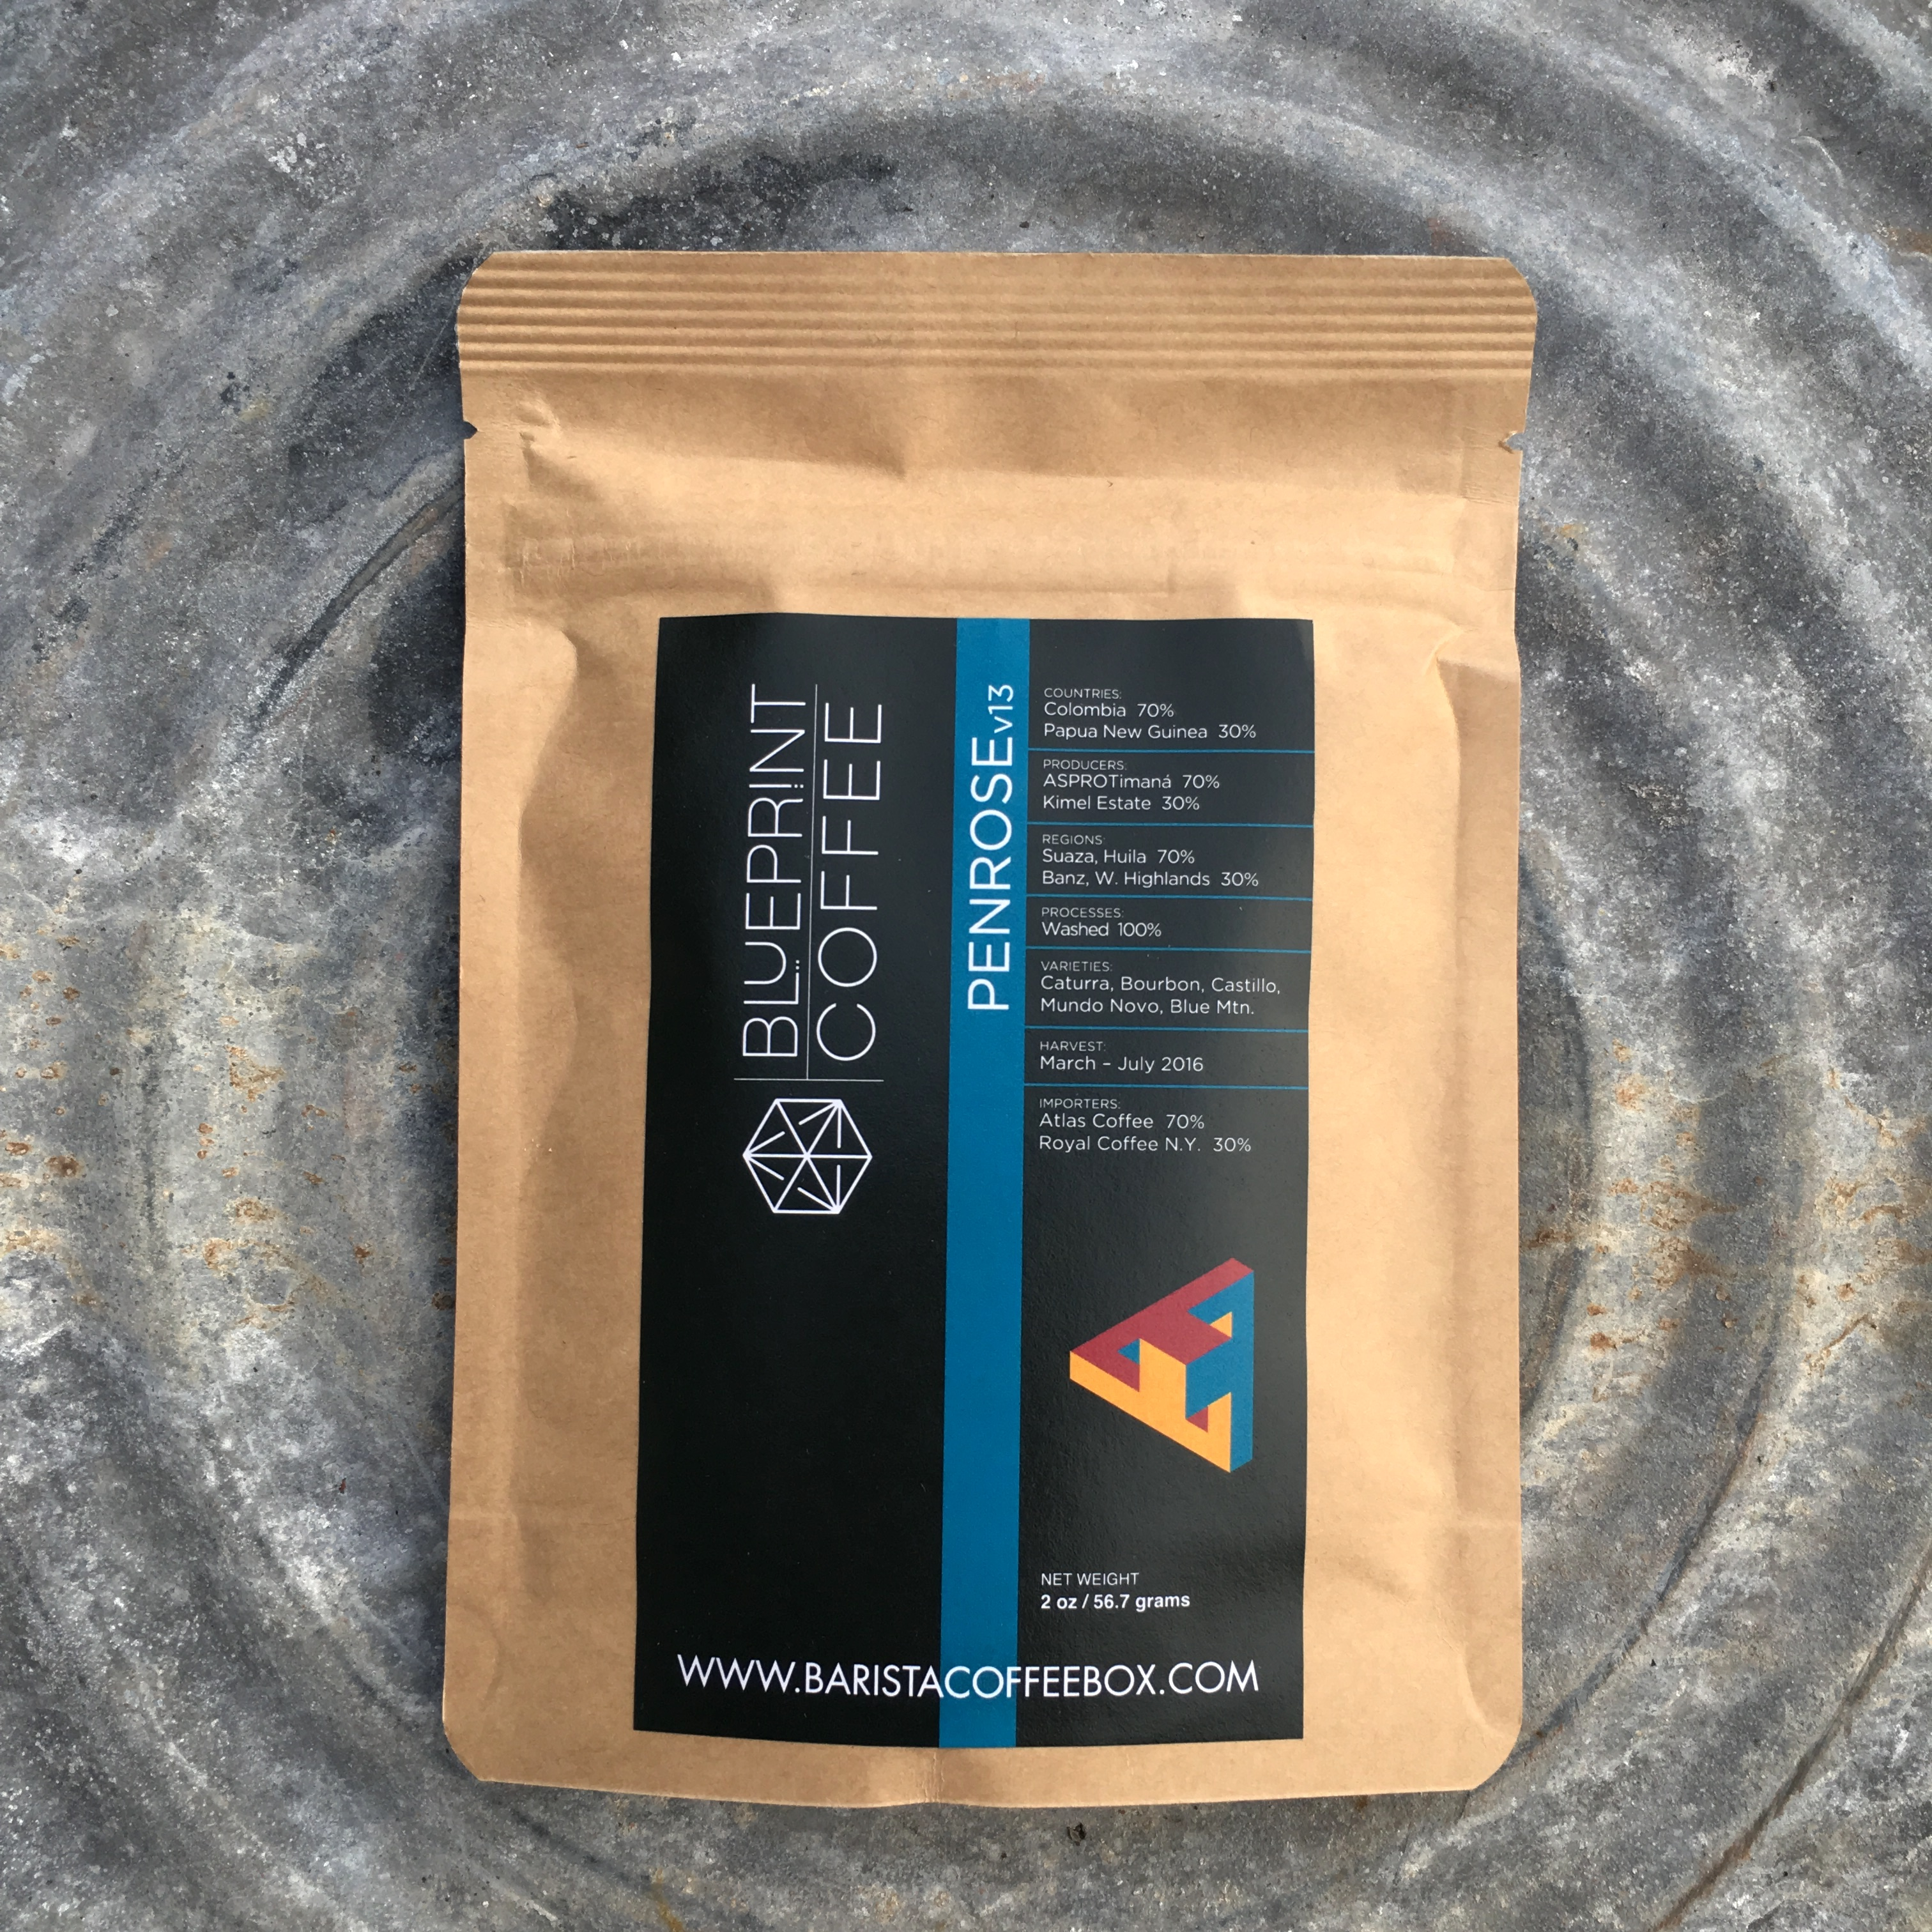 Blueprint coffee penrose v13 kc coffee geek weve arrived at the last of the coffees from julys barista coffee box another 2 component blend from blueprint coffee in st louis malvernweather Choice Image